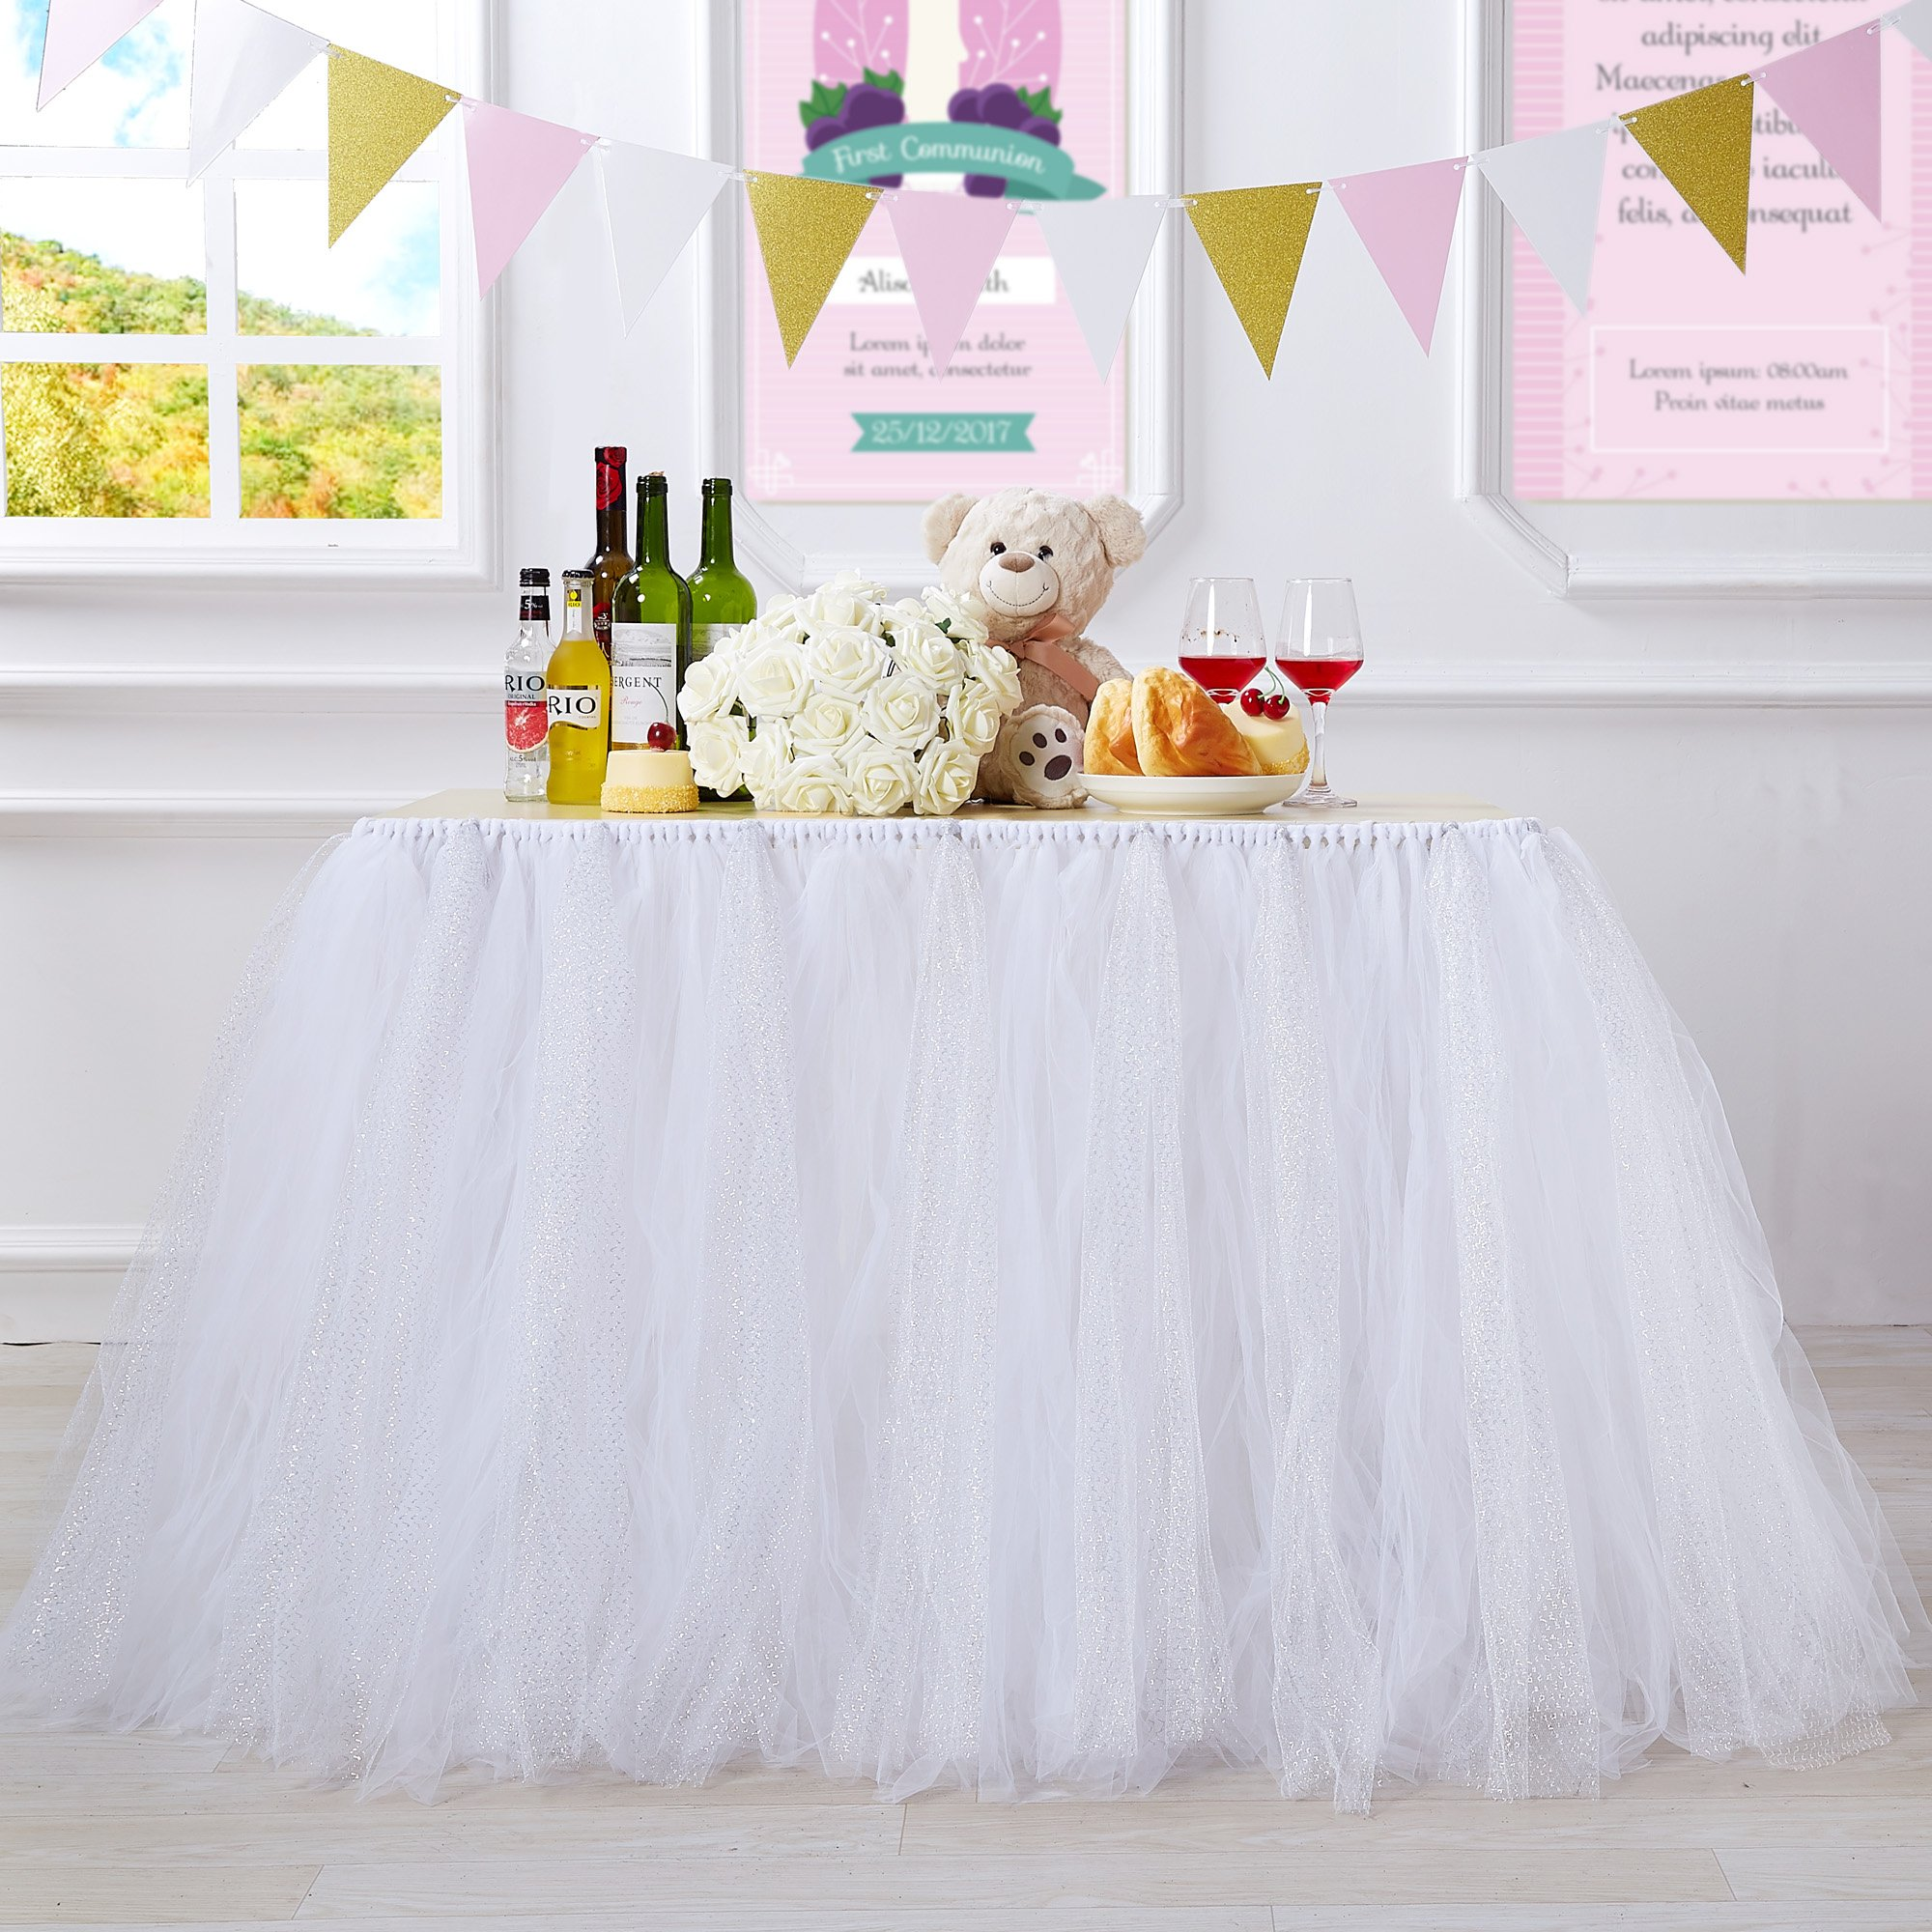 N&T NIETING Handmade Glitter Sparkle Tutu Tulle Table Skirt Cover Improved for Girl Princess Birthday Party Baby Showers Weddings Holiday Parties Home Decoration, 47''-60'' Long 32'' High (White)